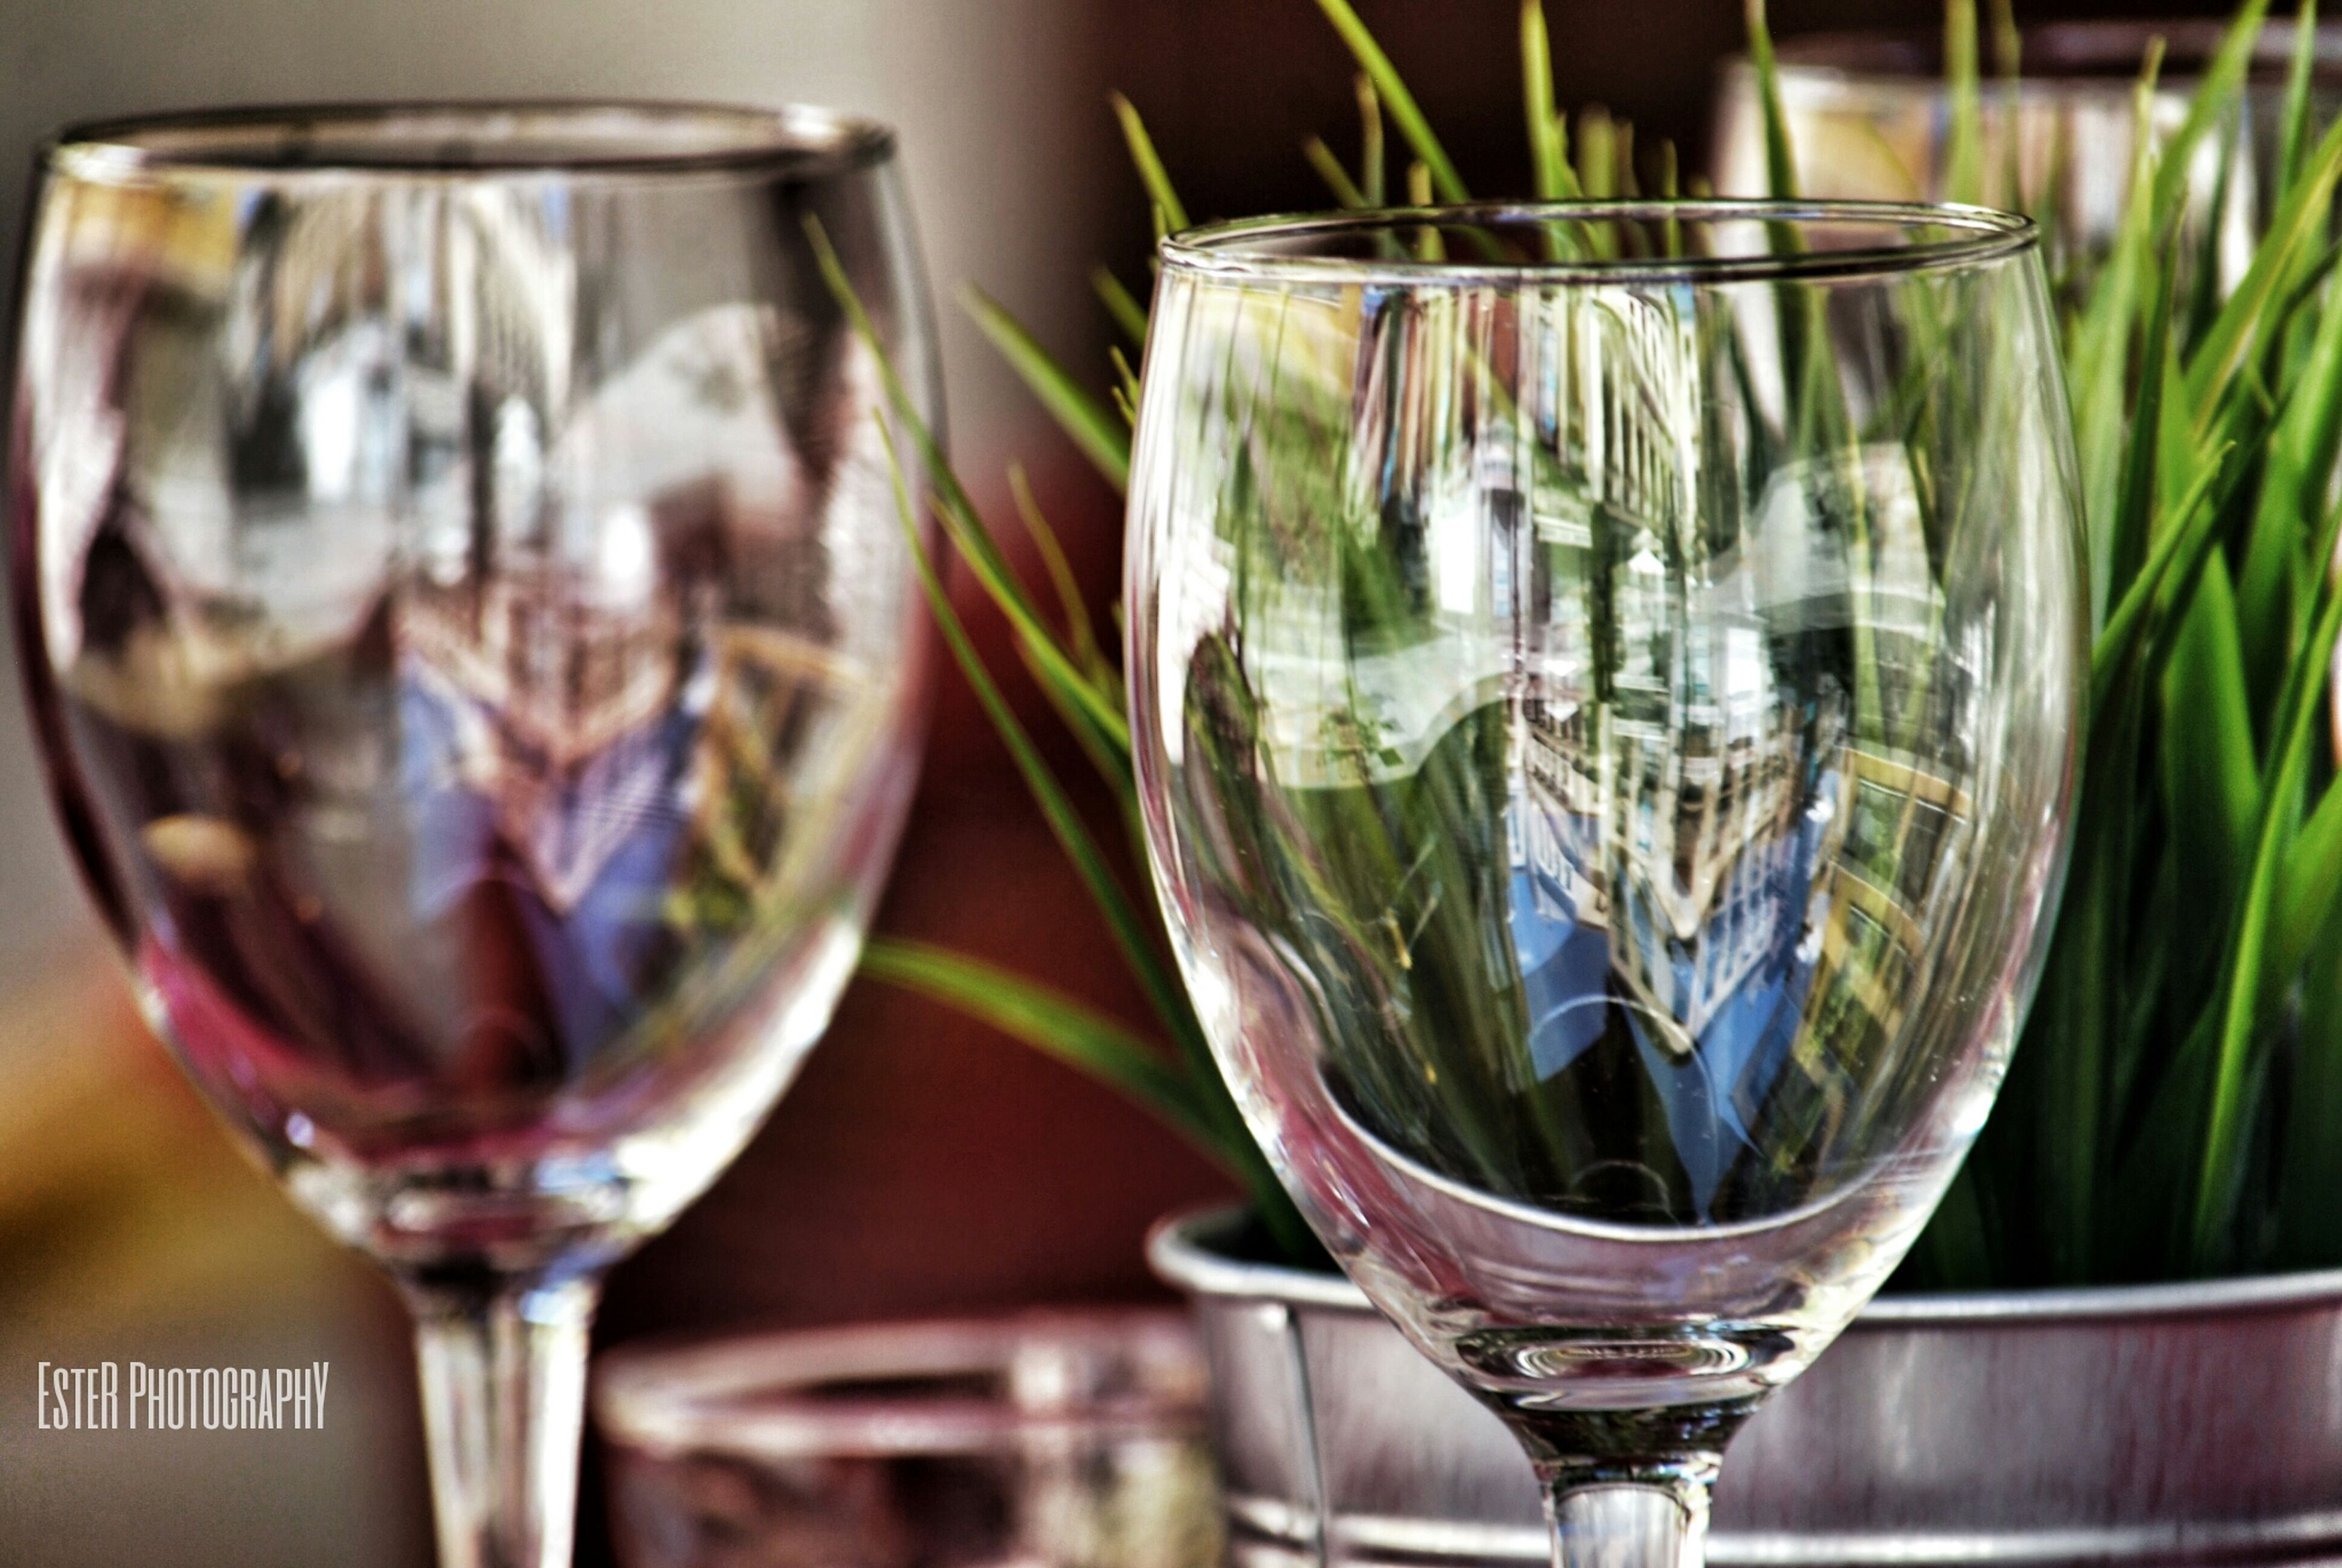 drink, drinking glass, food and drink, indoors, refreshment, glass - material, table, transparent, wineglass, alcohol, still life, wine, freshness, glass, close-up, focus on foreground, restaurant, wine glass, alcoholic drink, no people